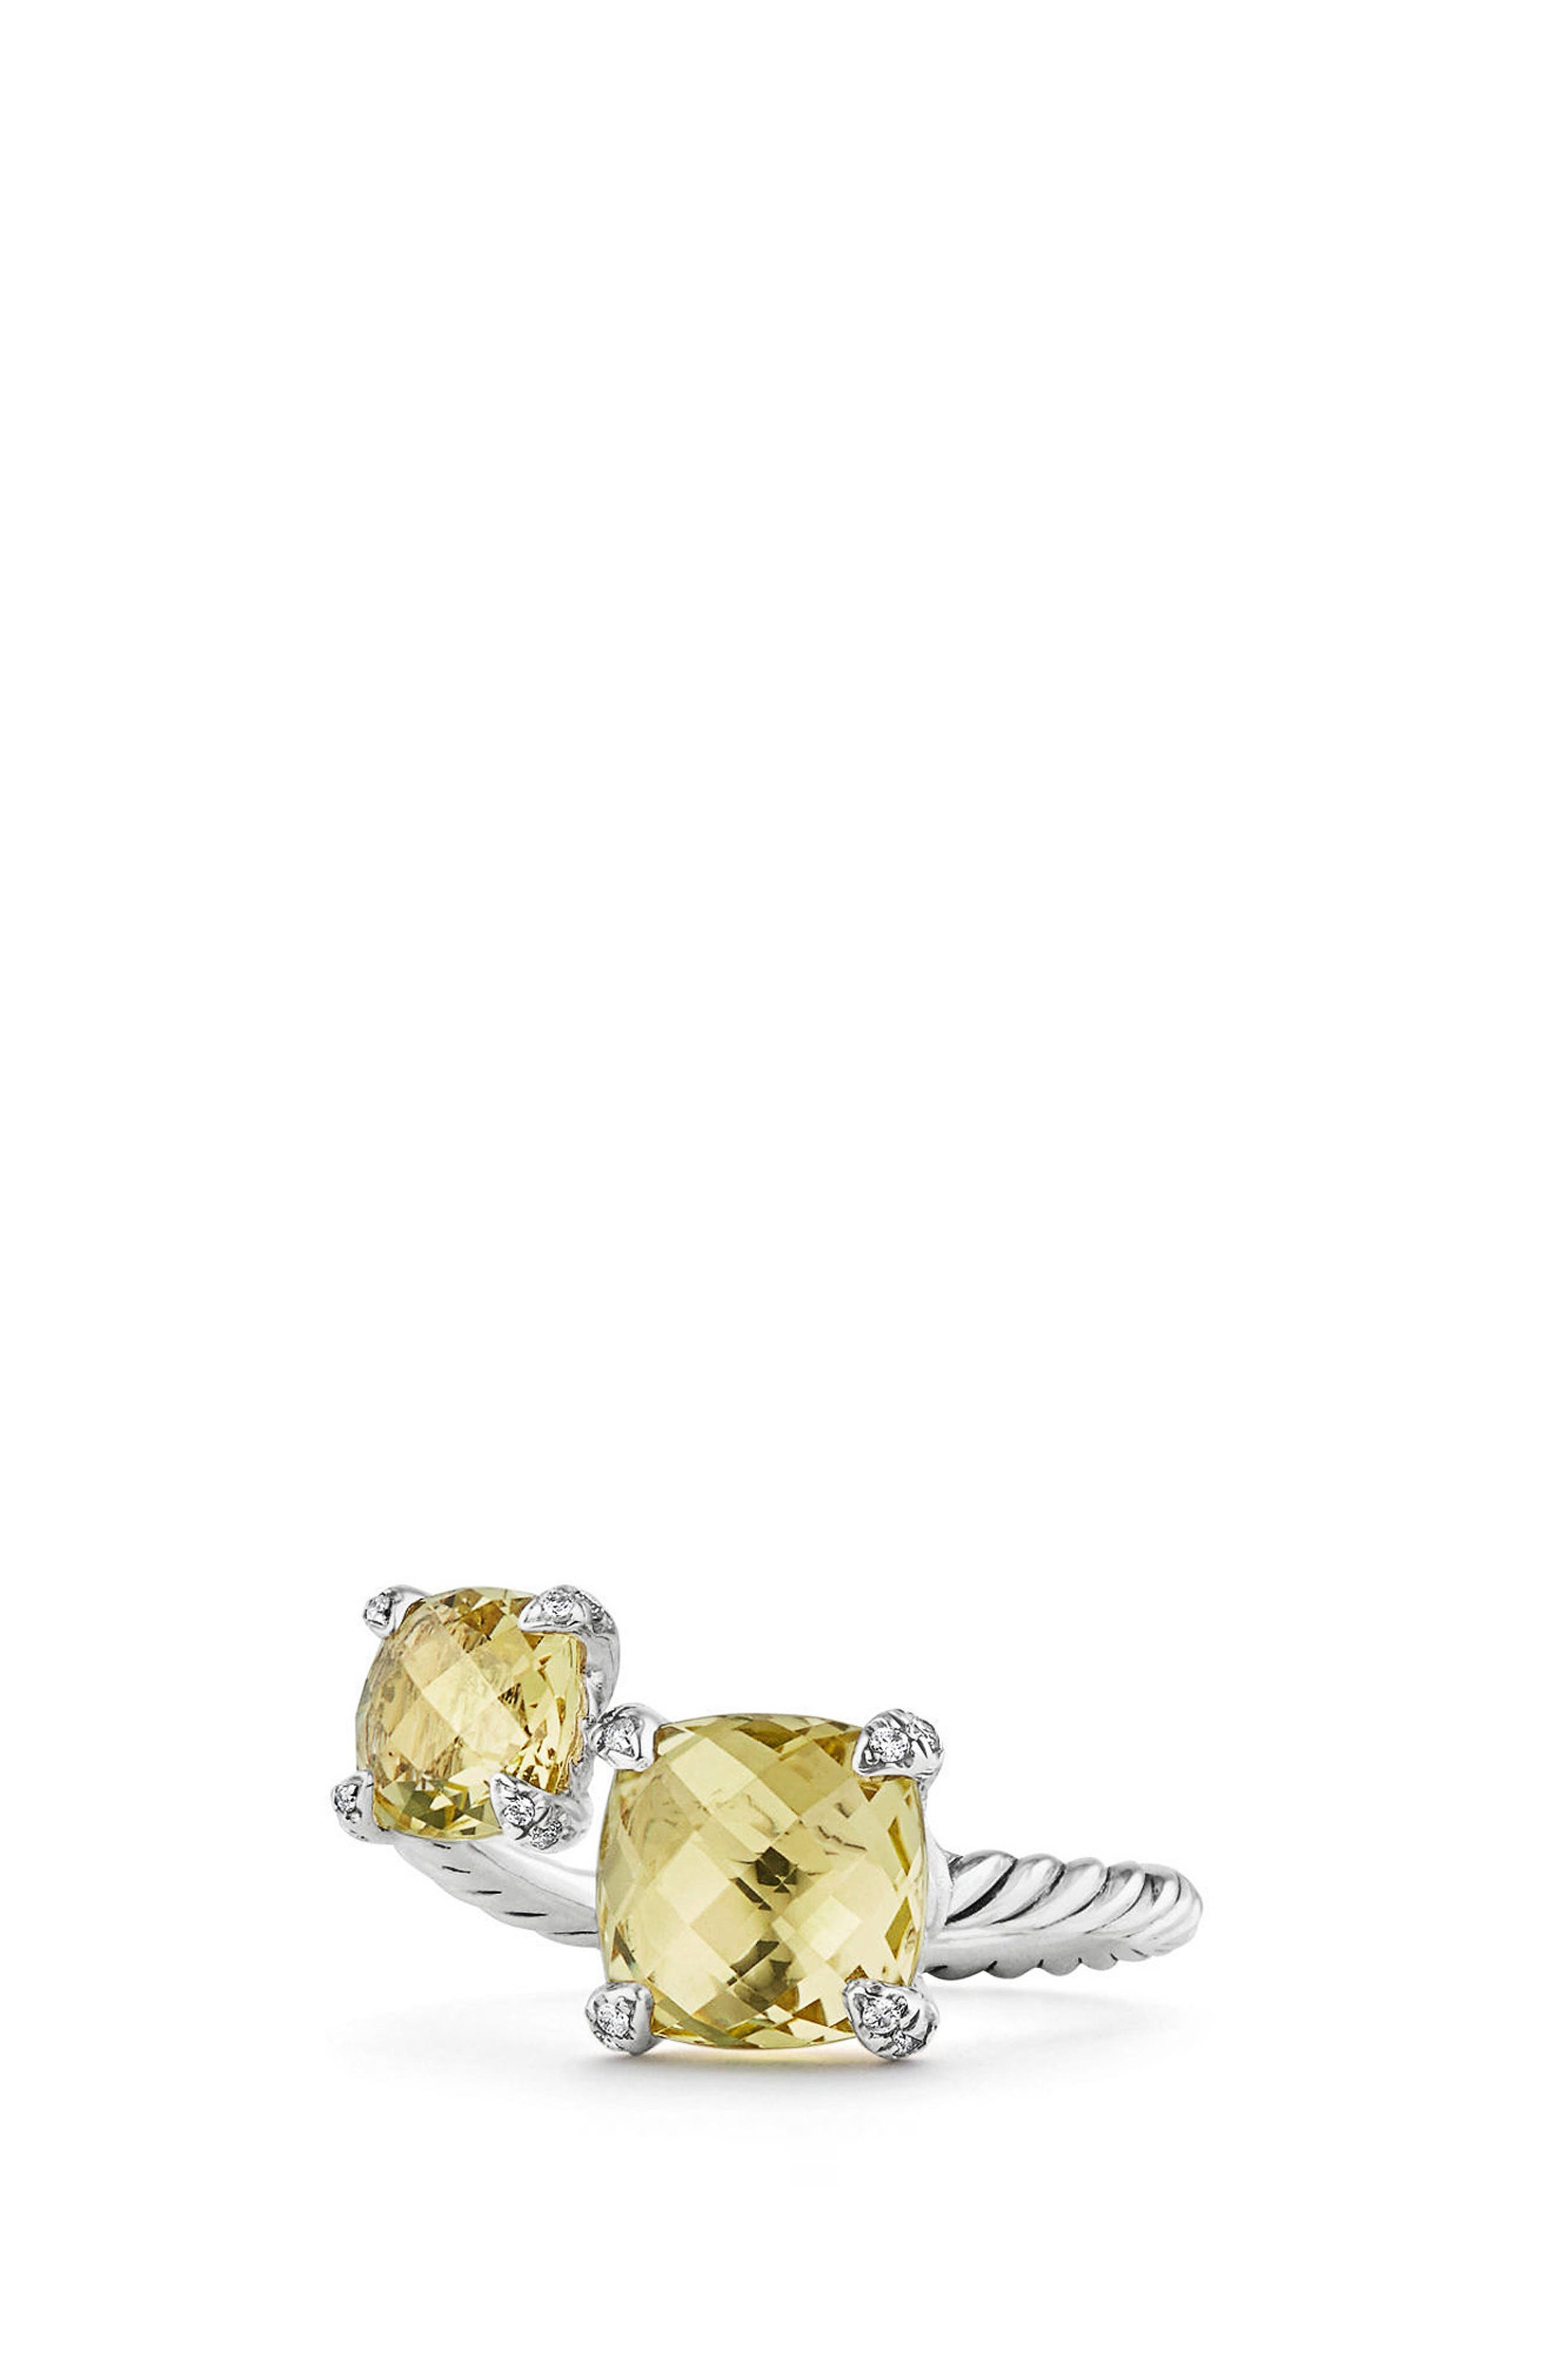 Châtelaine Bypass Ring with Diamonds,                             Main thumbnail 1, color,                             Lemon Citrine?